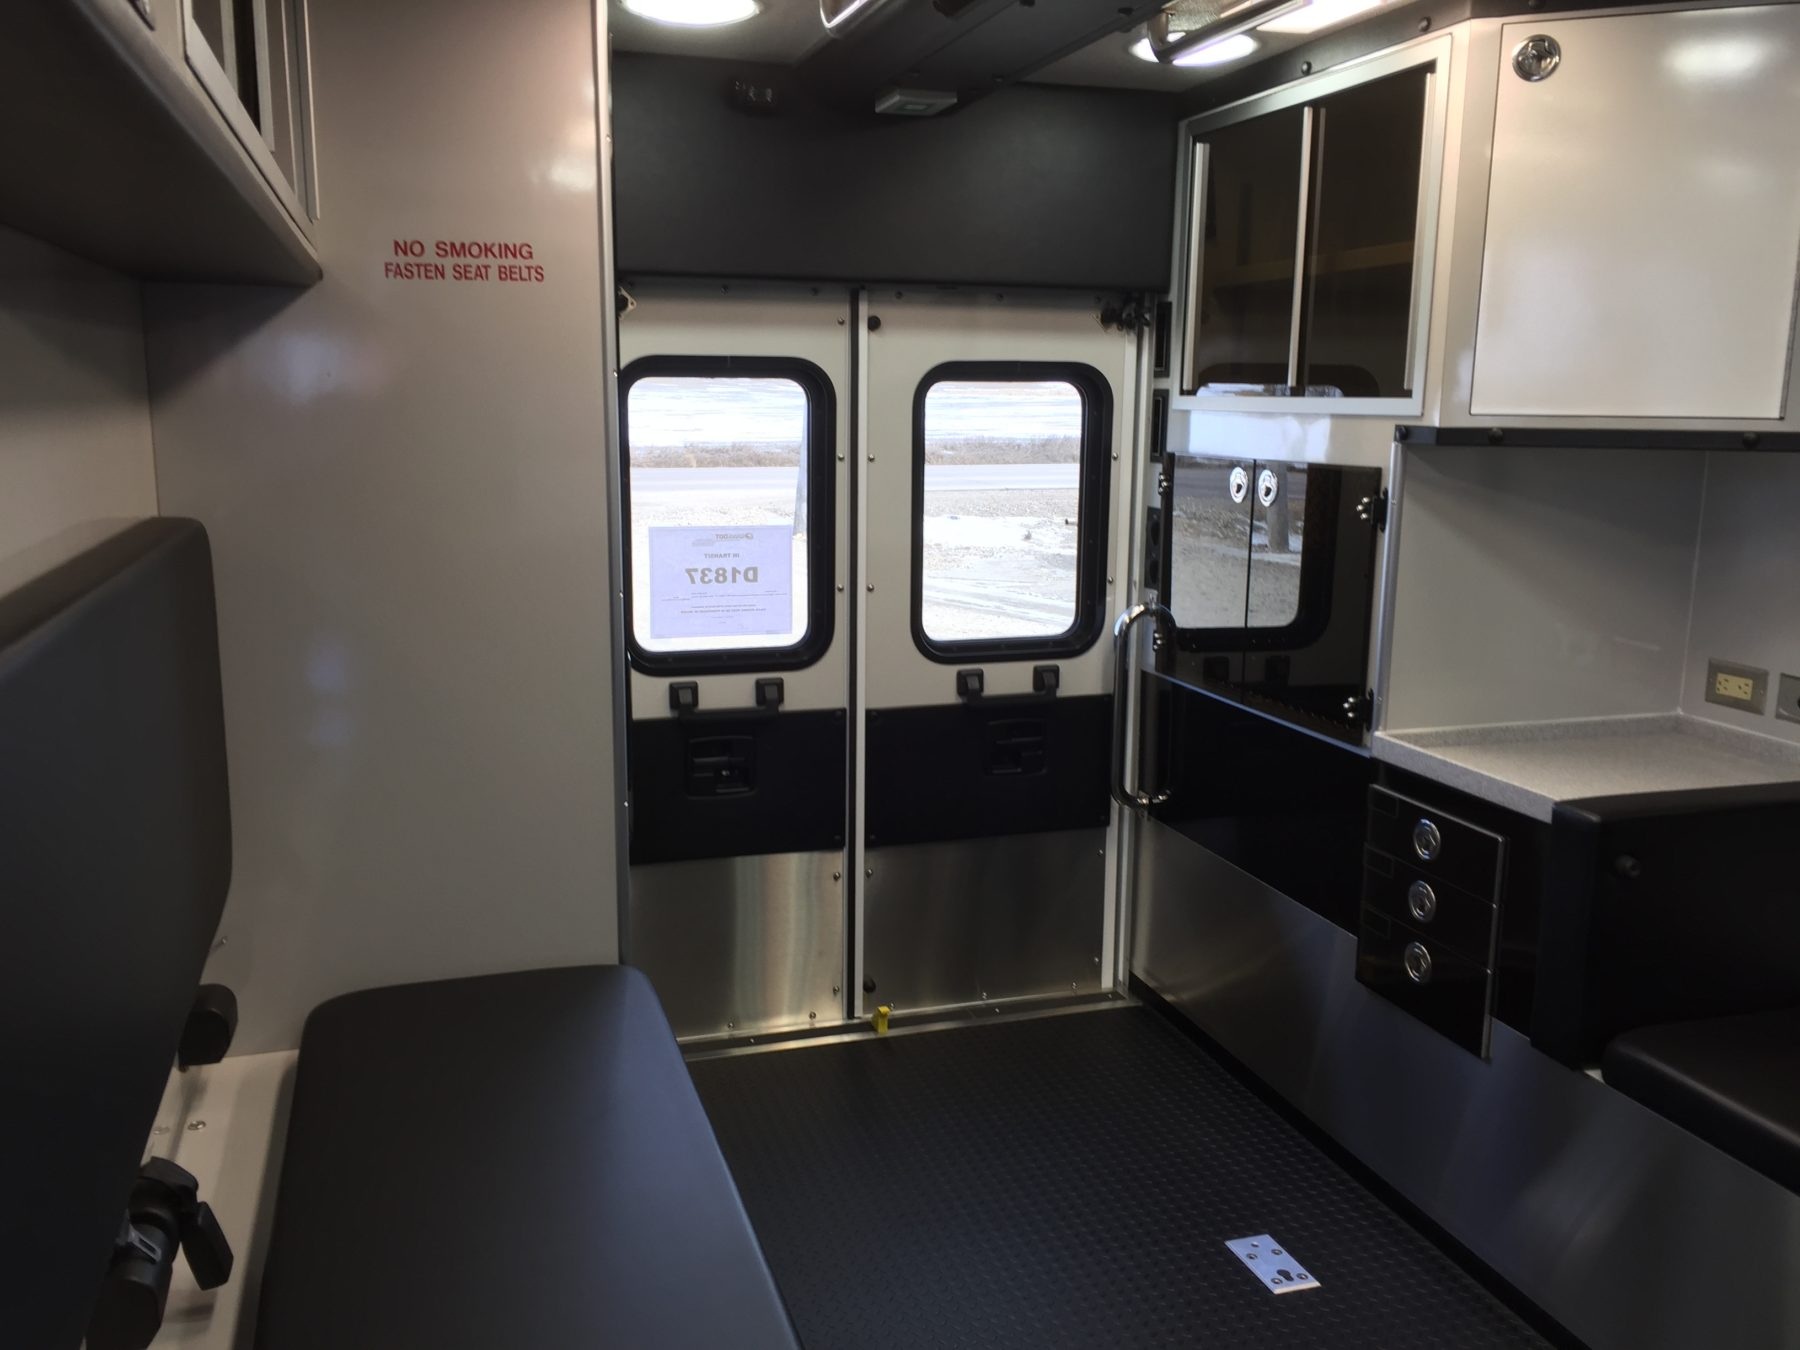 2017 Ram 4500 4x4 Heavy Duty Ambulance For Sale – Picture 15